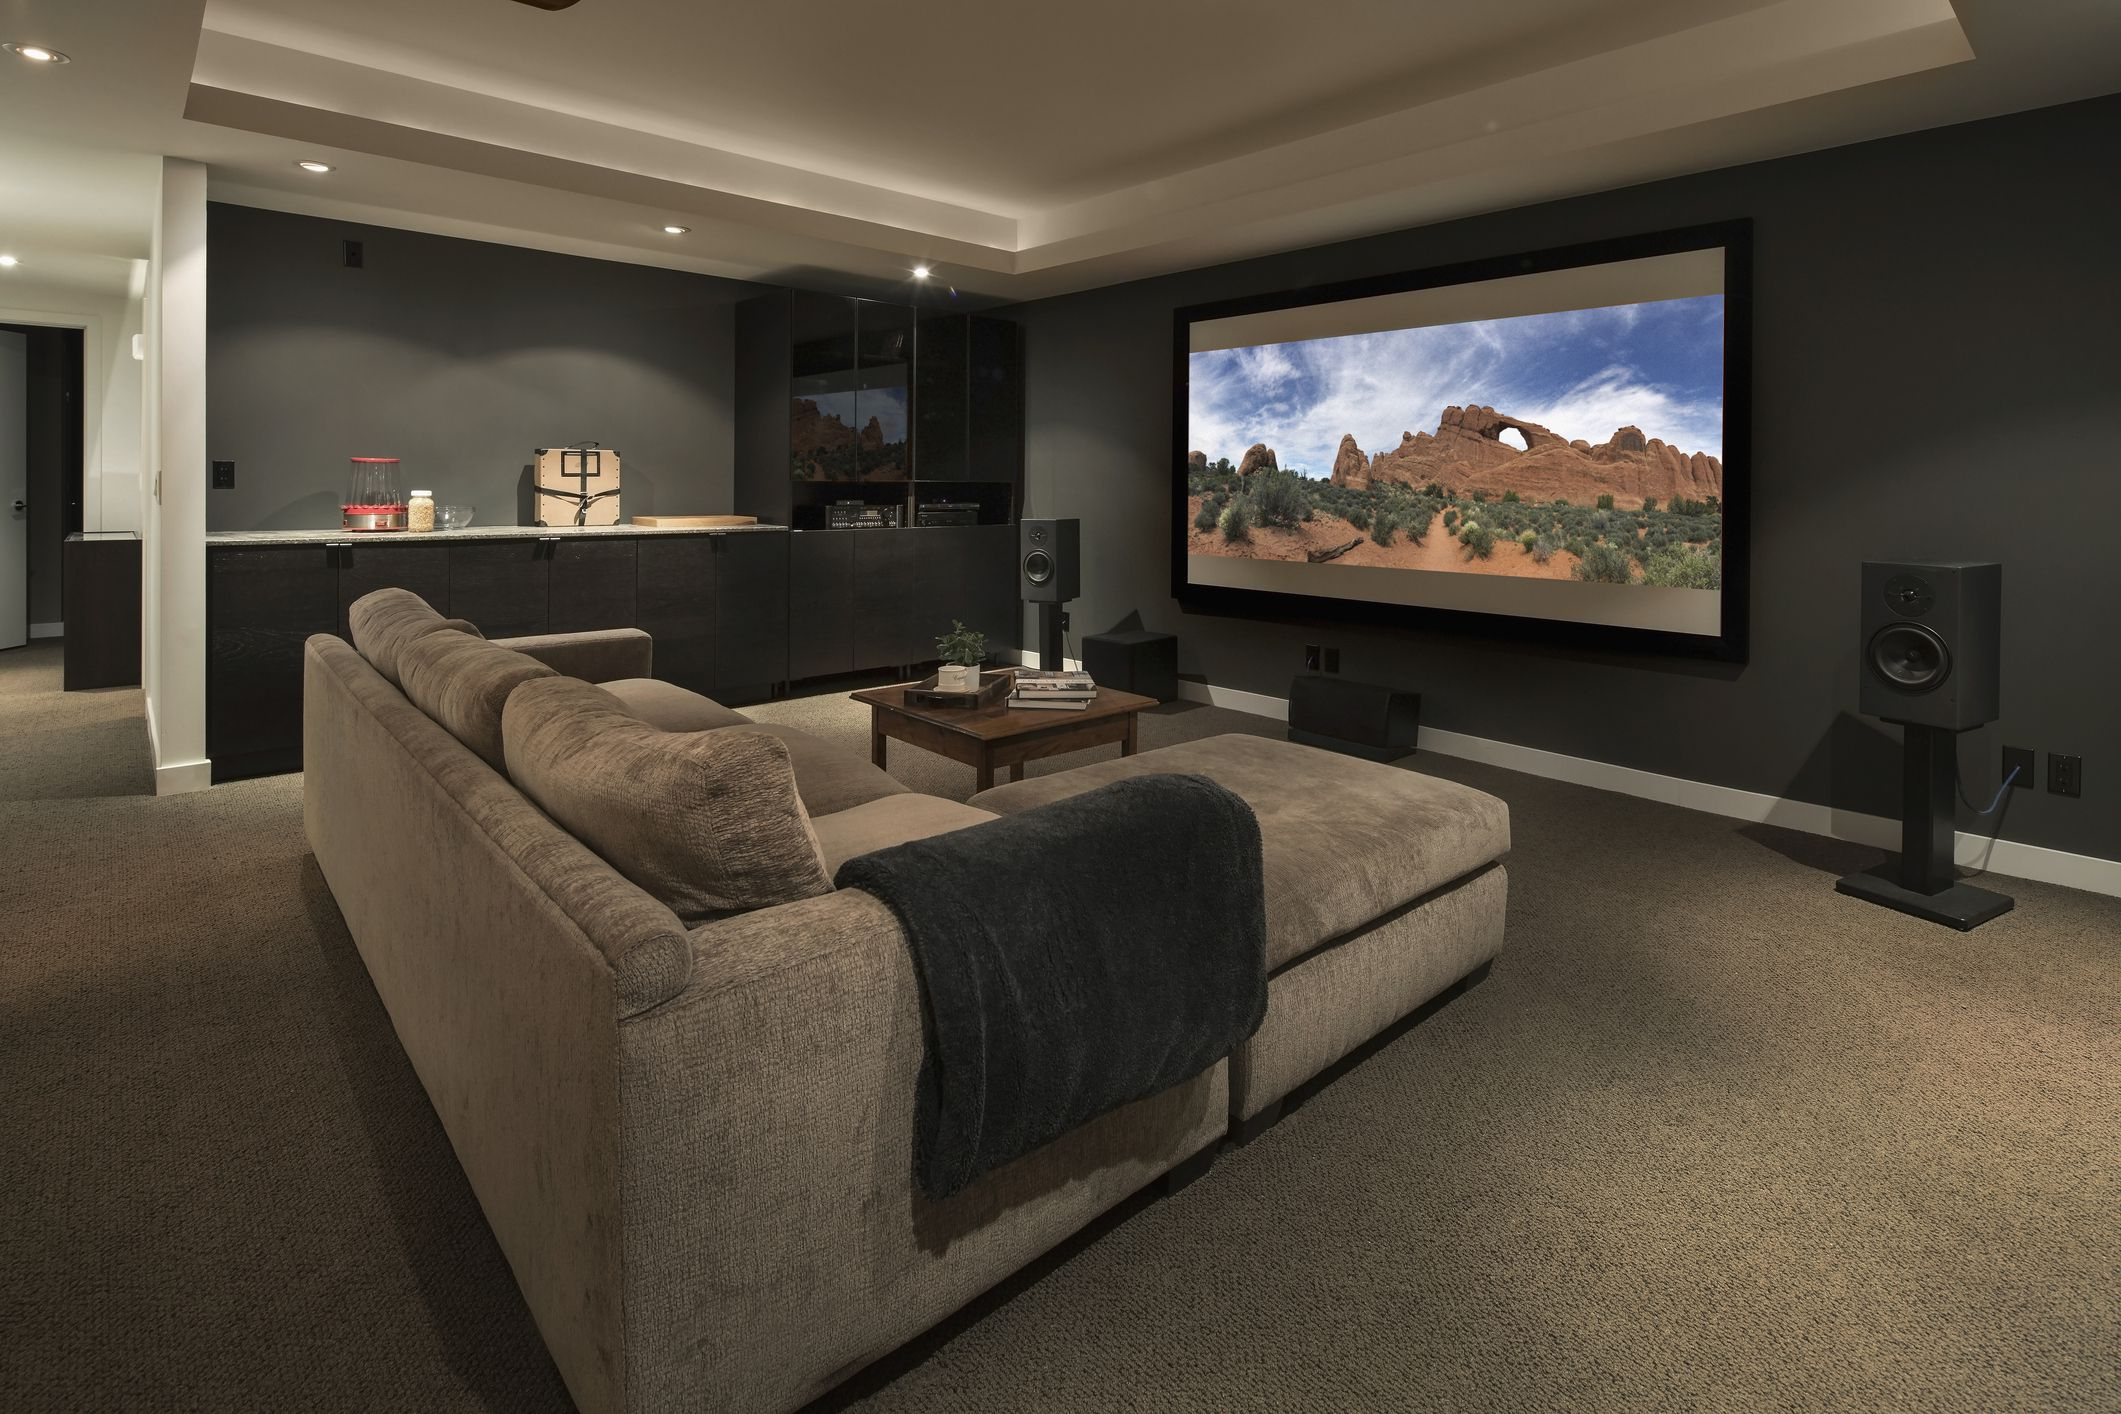 The 7 Best Home Theater Systems Of 2020